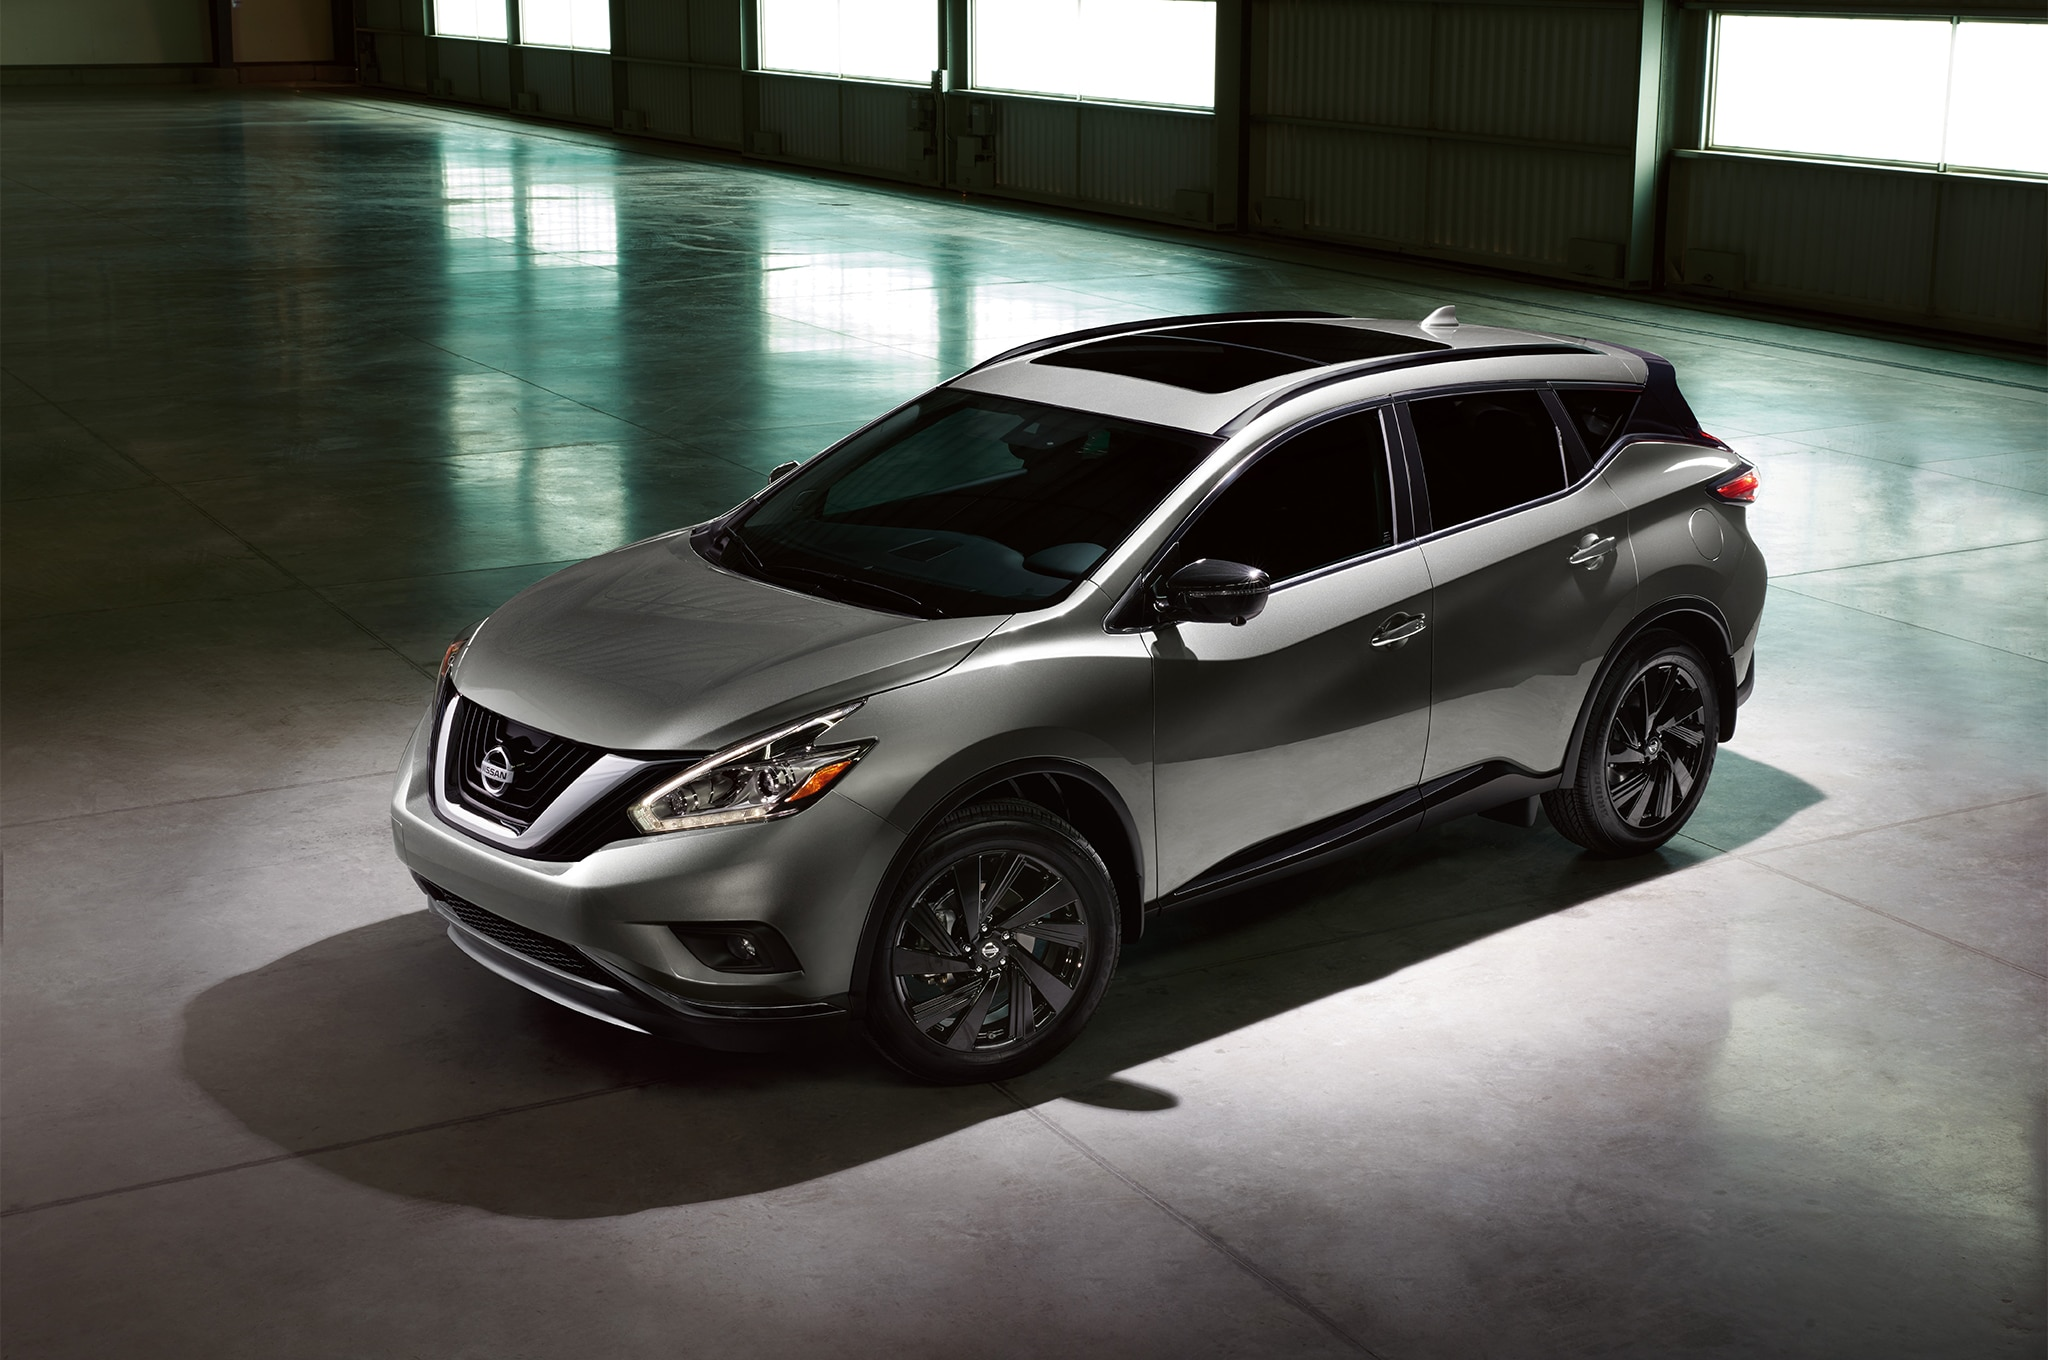 2017 nissan murano price unveiled starts at 30 710 automobile magazine. Black Bedroom Furniture Sets. Home Design Ideas